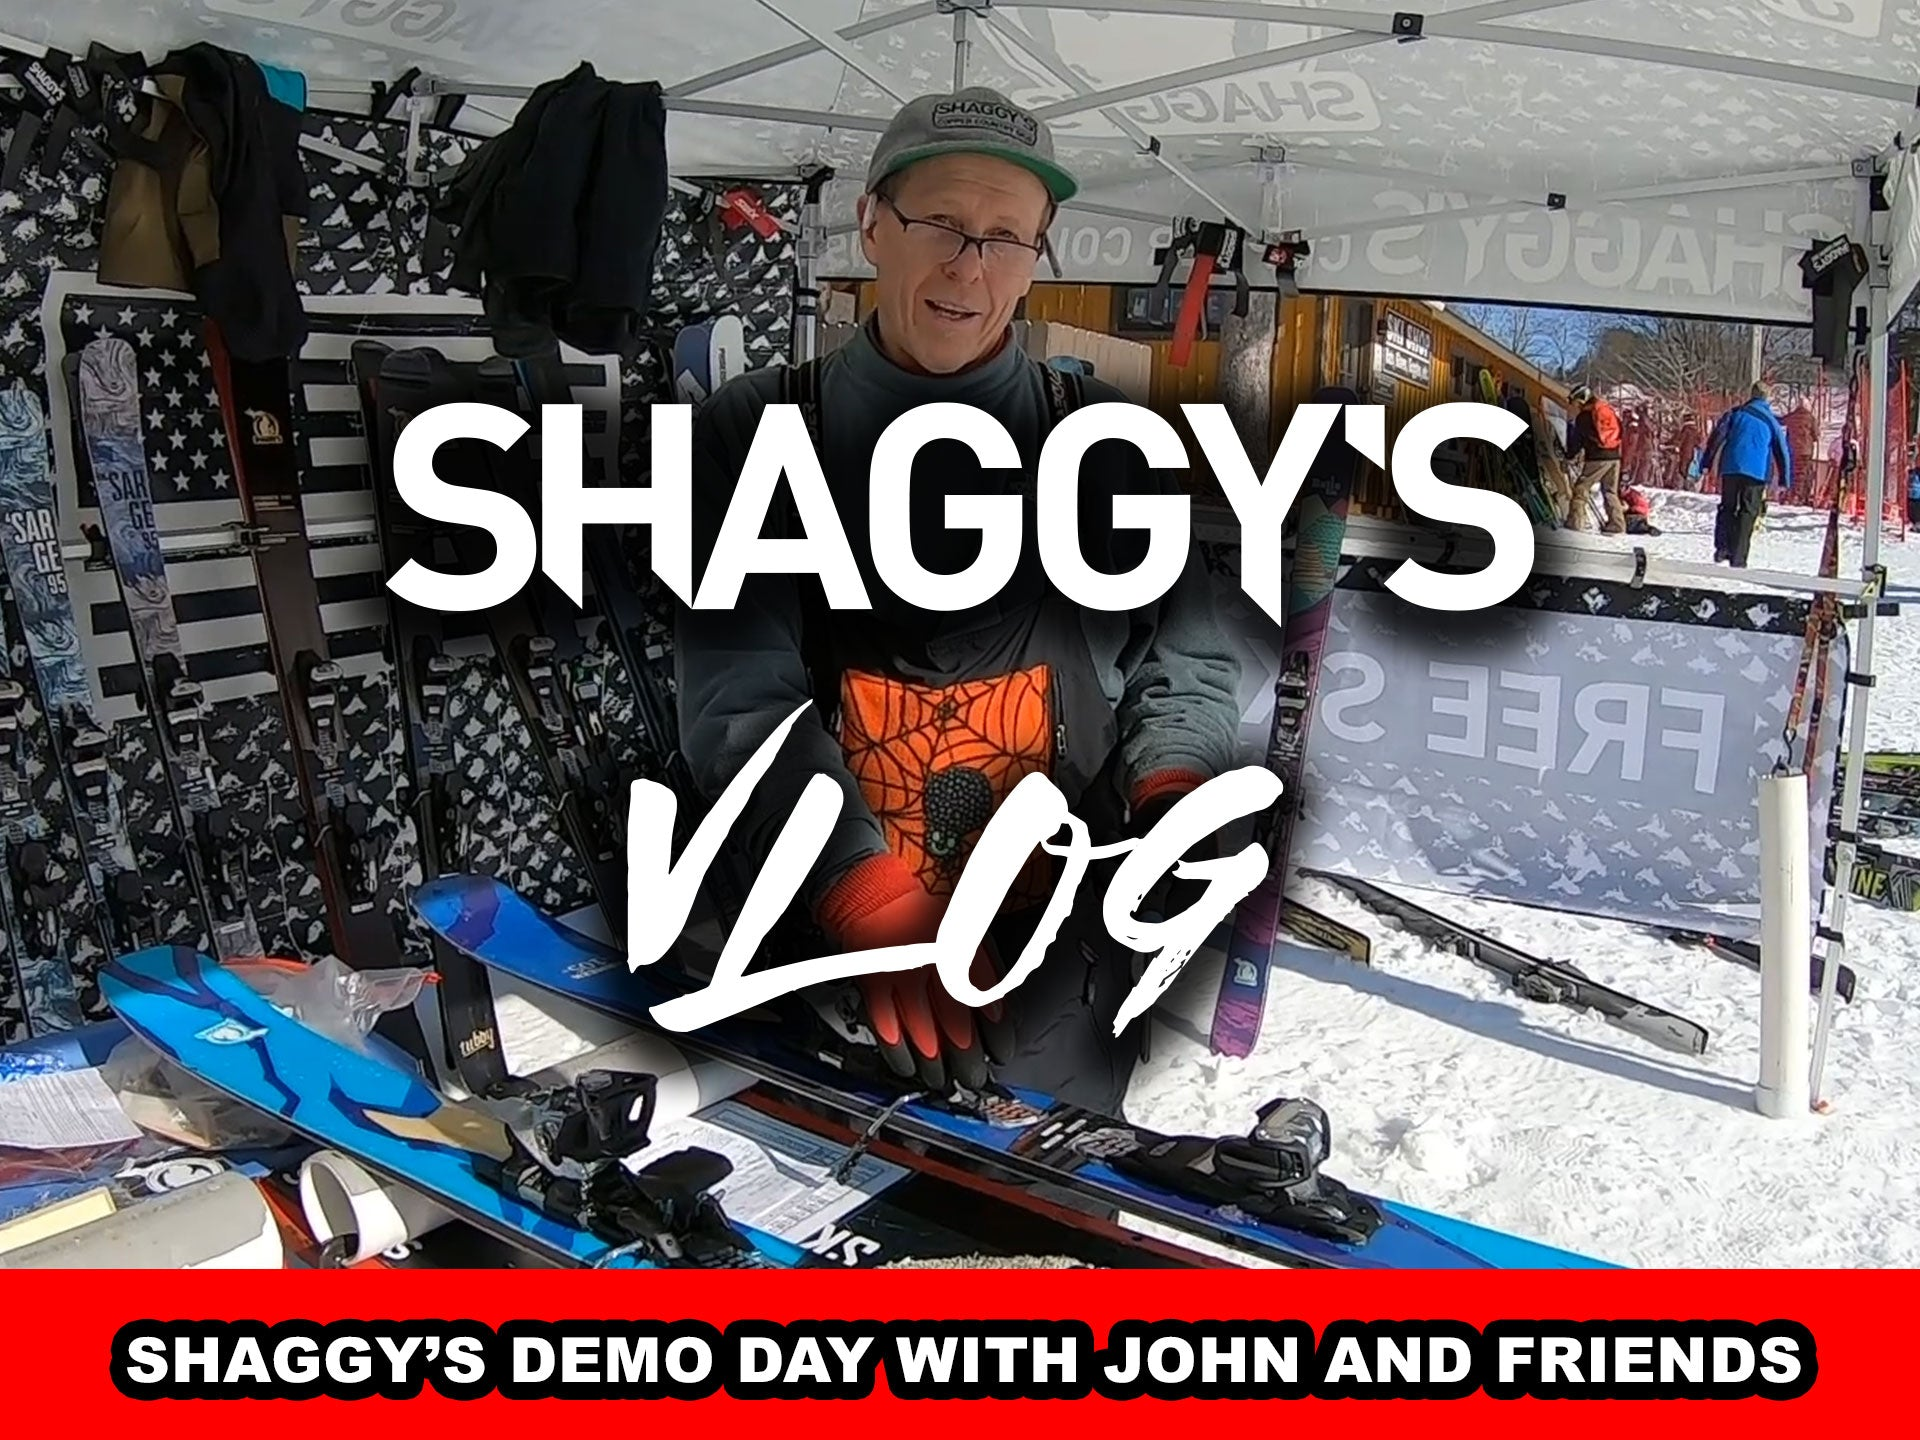 VLOG 016 - Shaggy's Demo Day with John and Friends